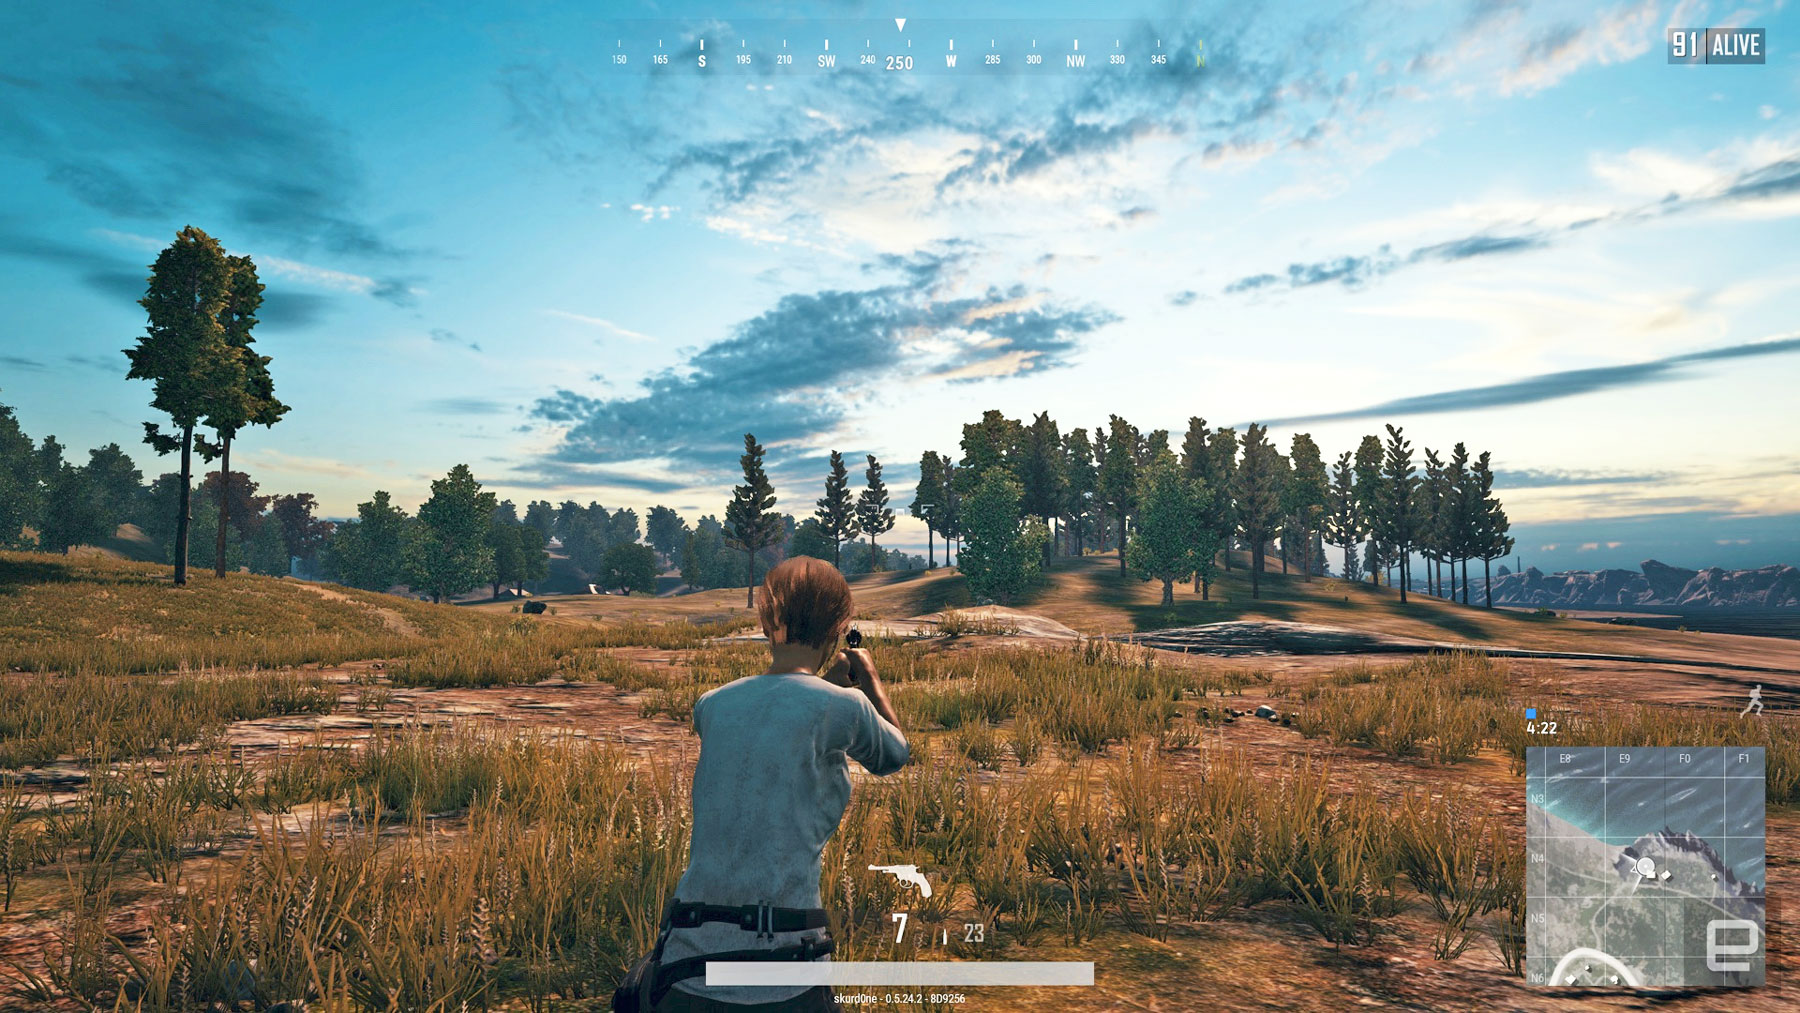 Pubg Live Wallpaper Pc: 'PUBG' Is Quietly Changing Video Games With Its 3D Replay